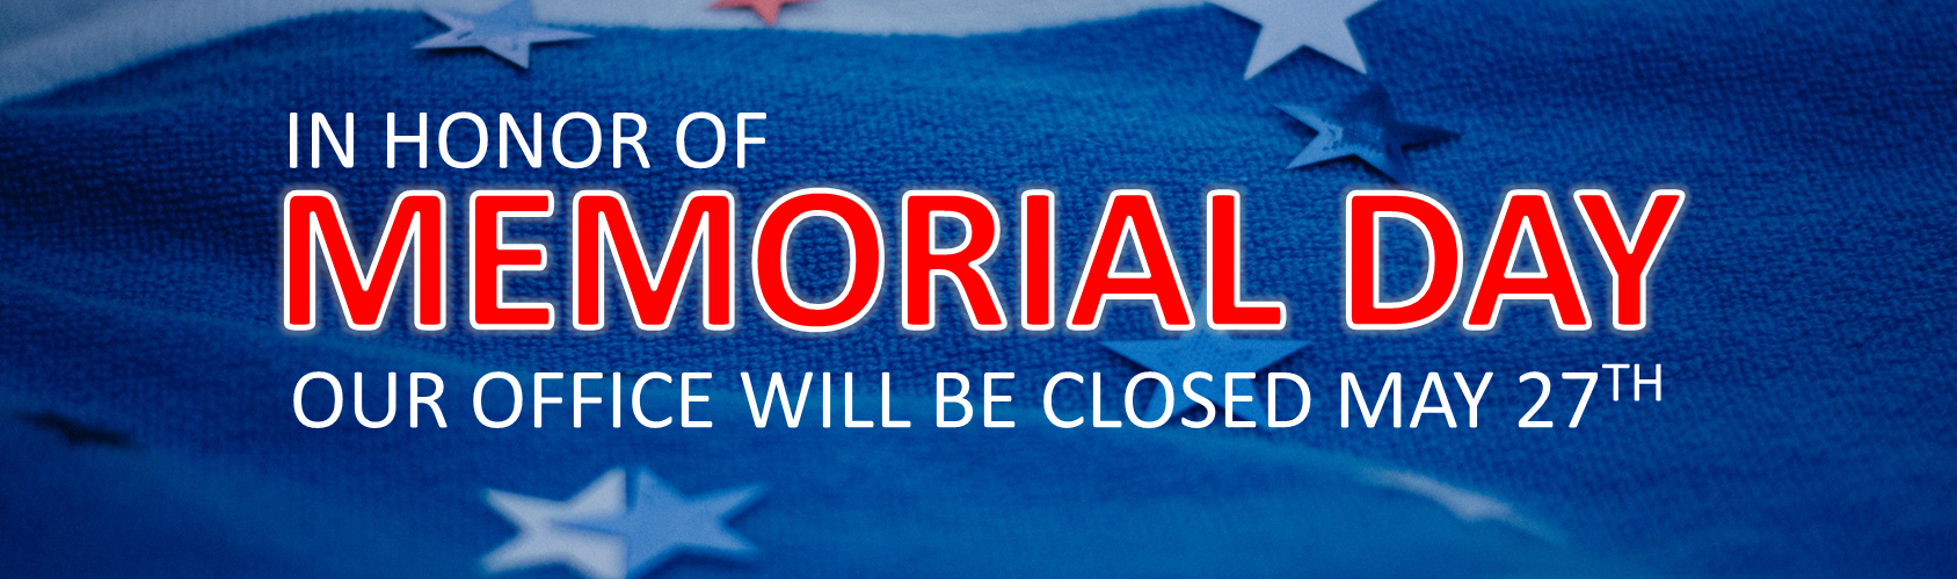 Email Banner - Memorial Day 2019